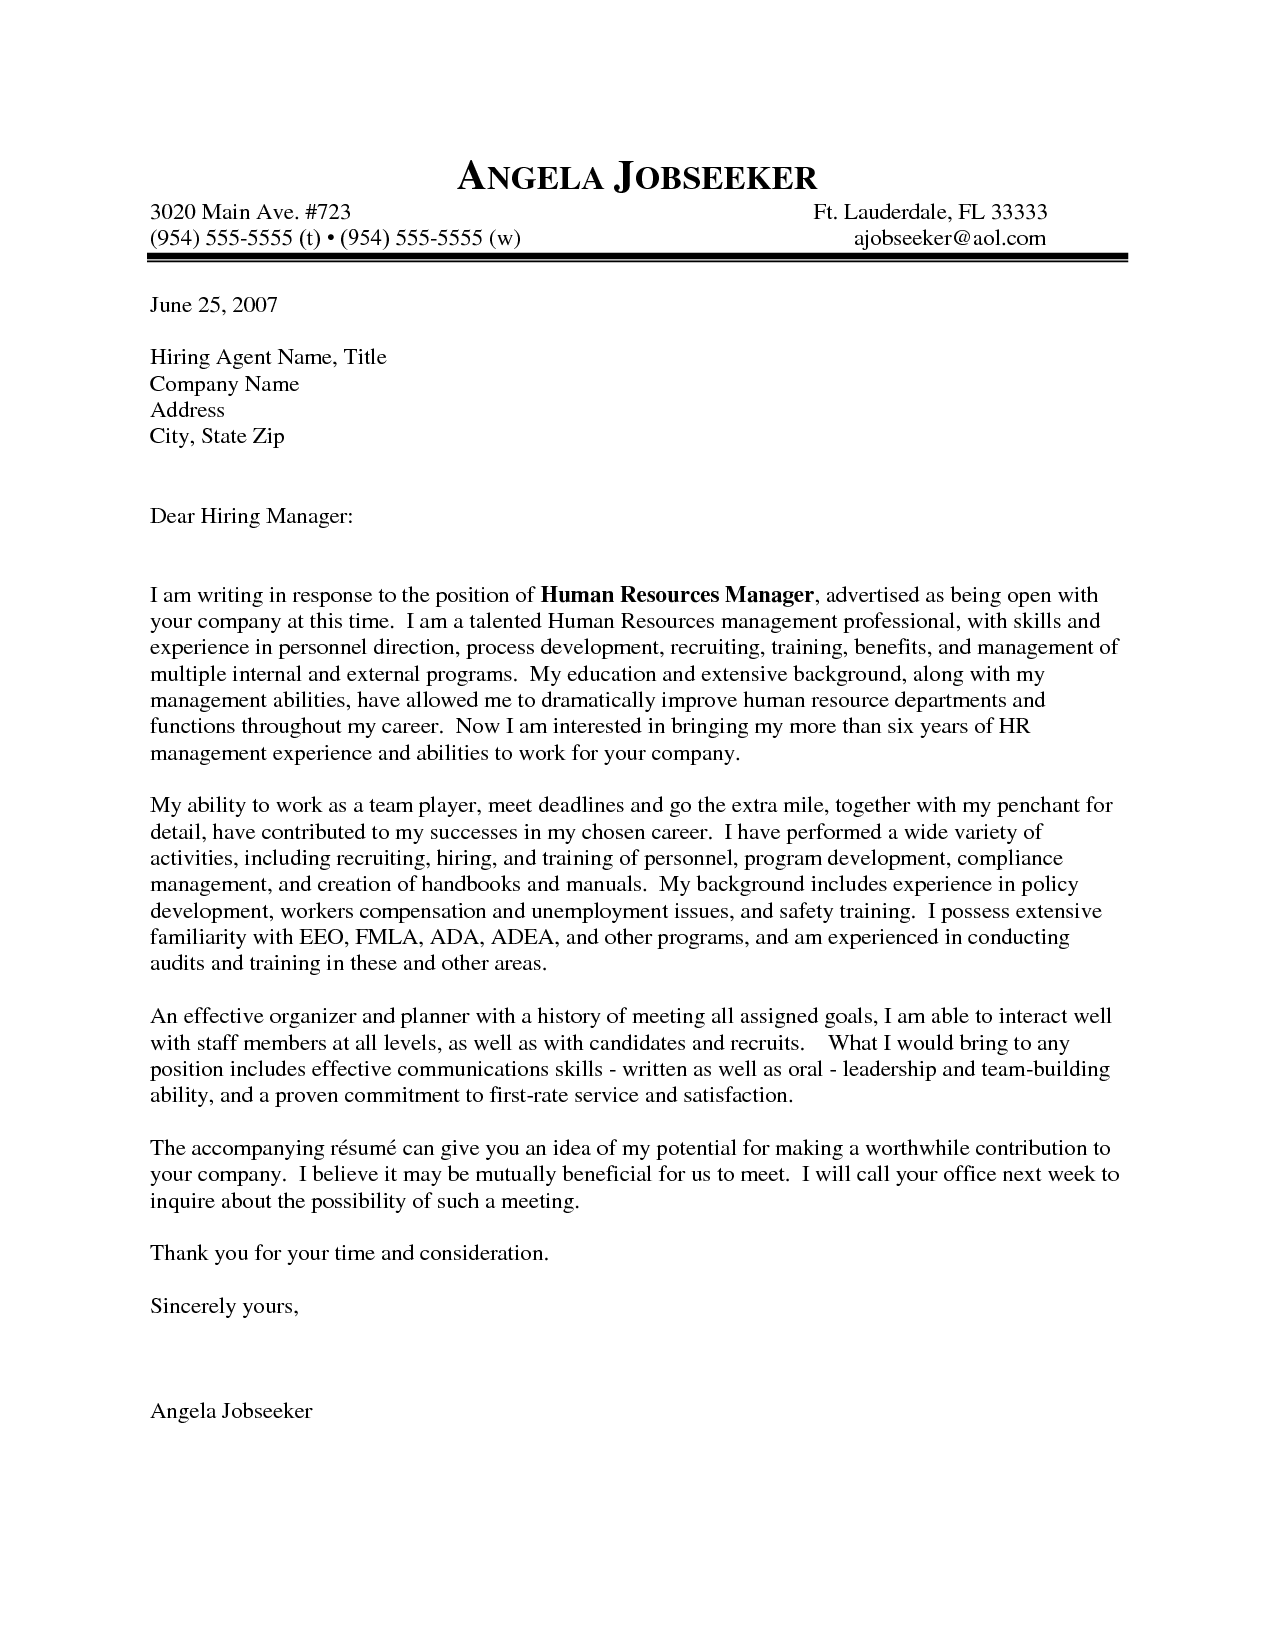 resume templates and cover letters cover letters resume resumetemplates templates